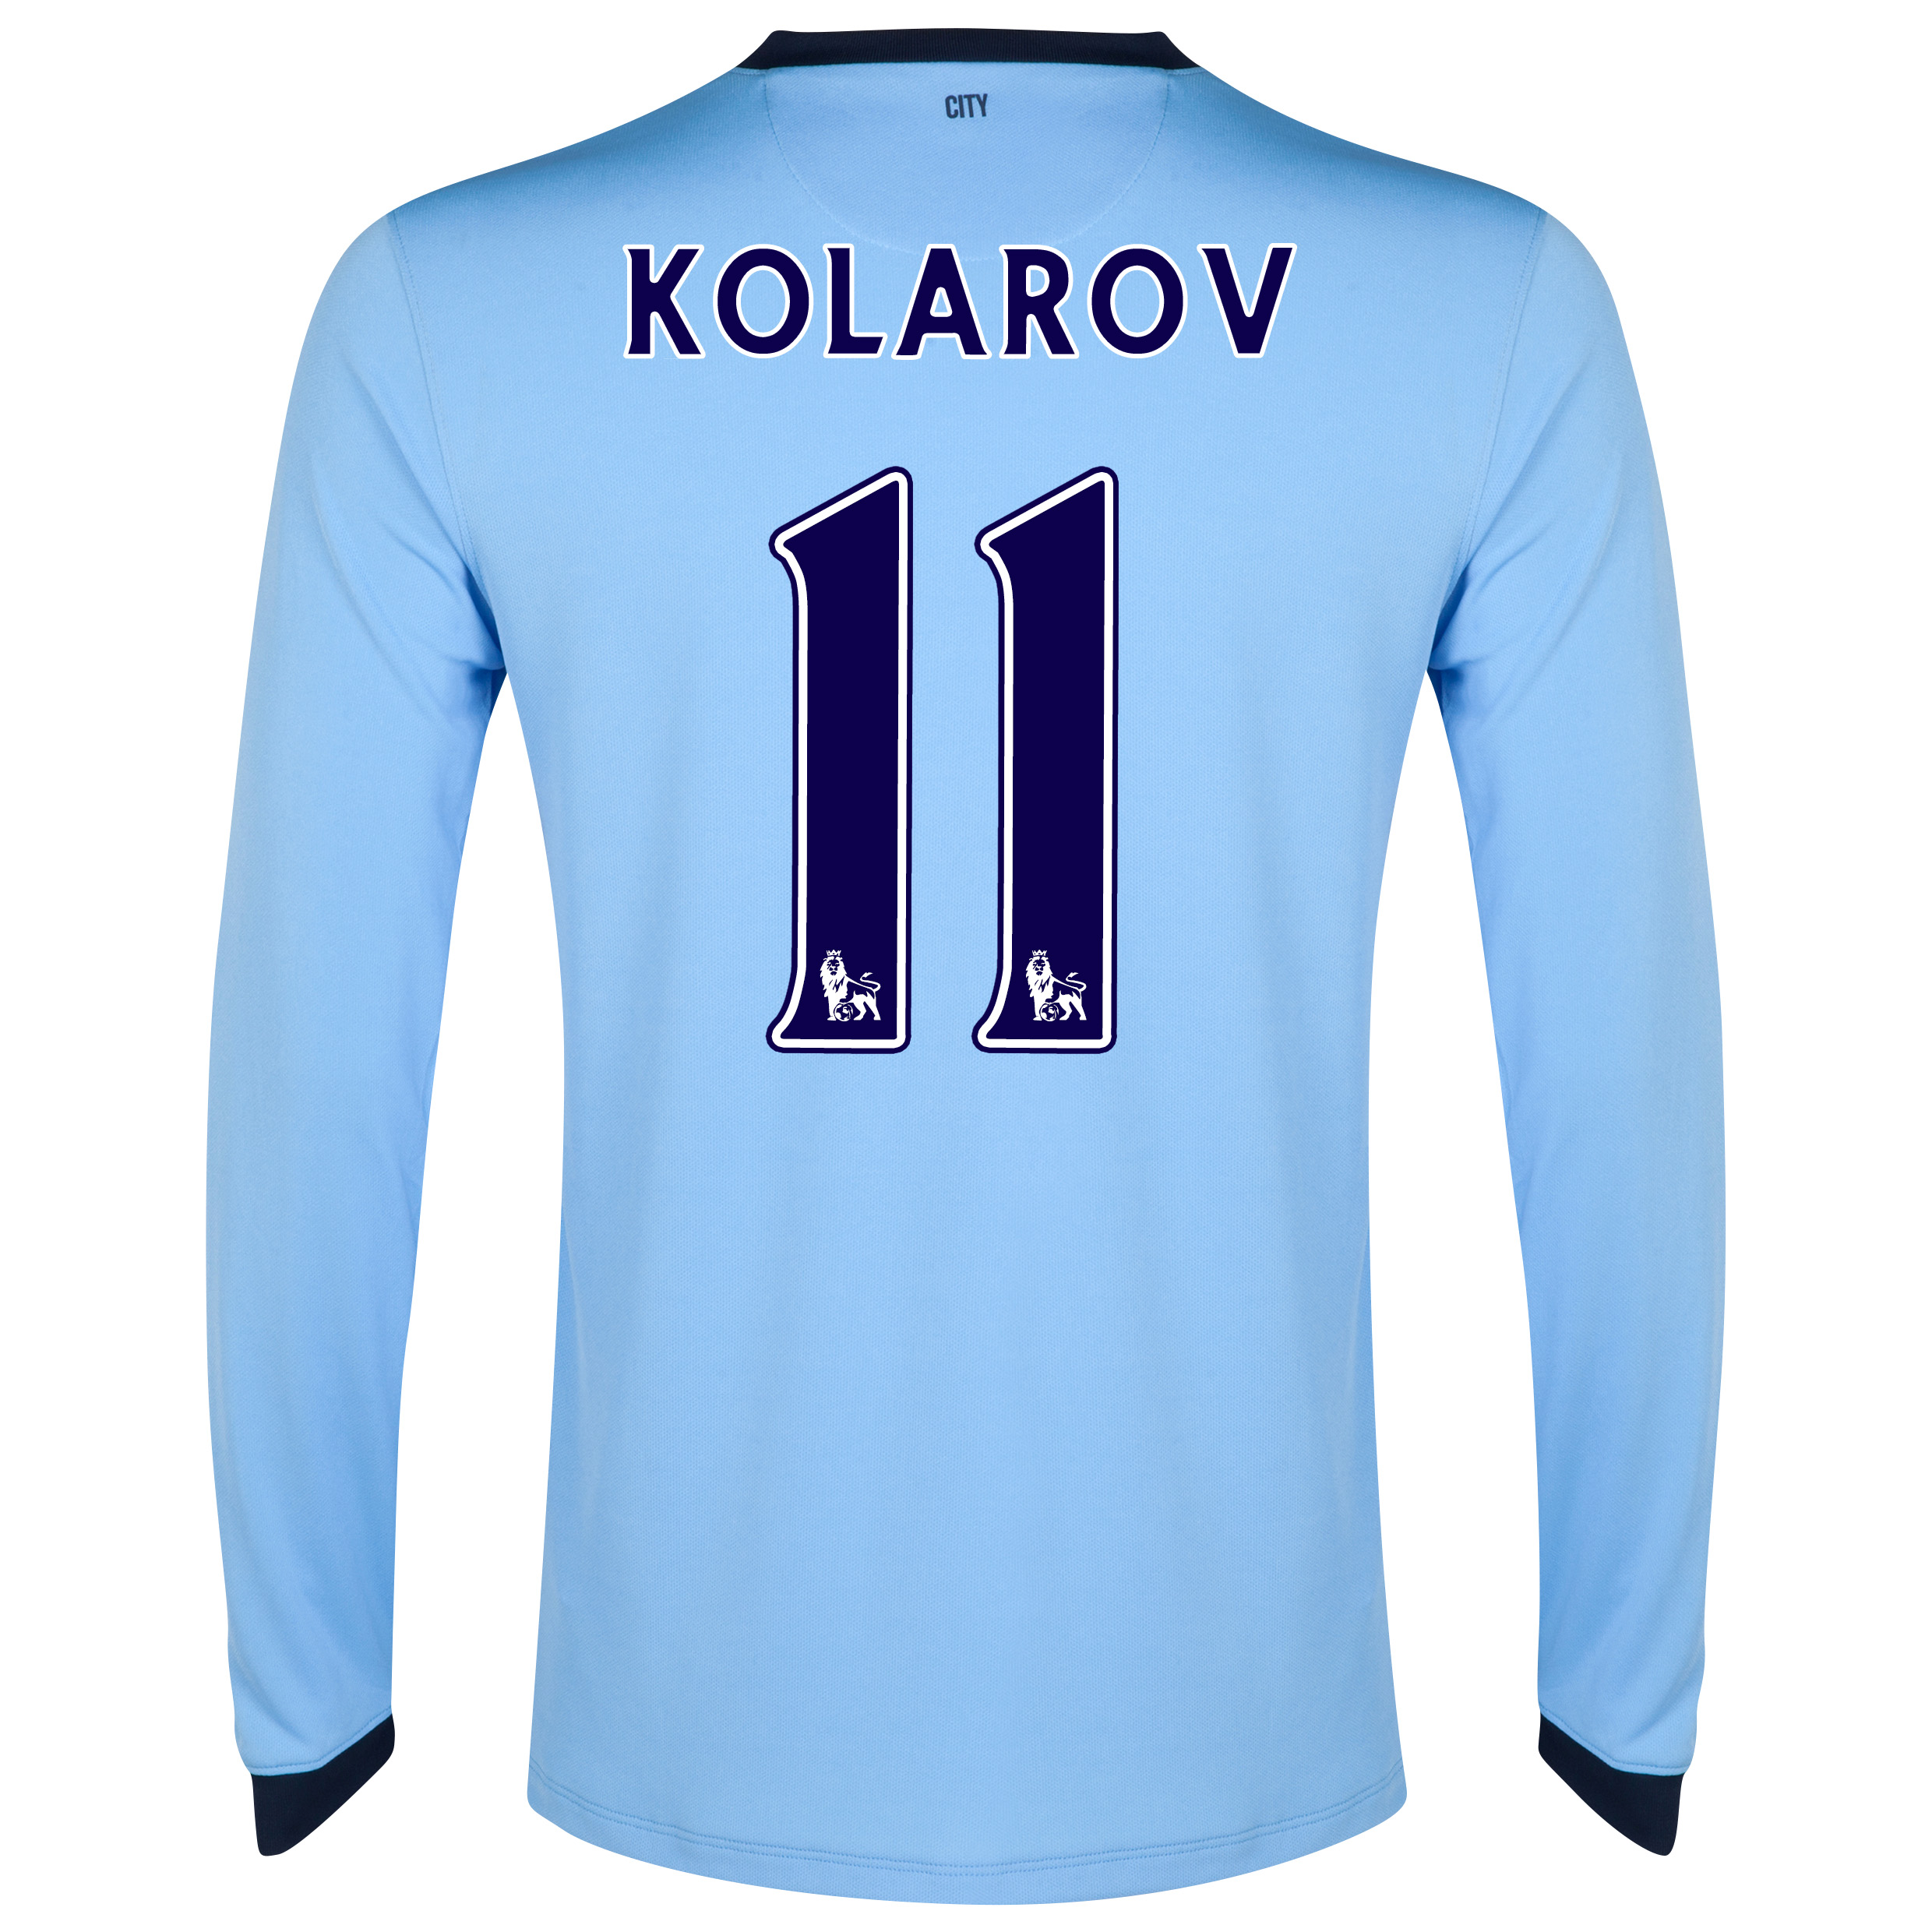 Manchester City Home Shirt 2014/15 - Long Sleeve Sky Blue with Kolarov 11 printing